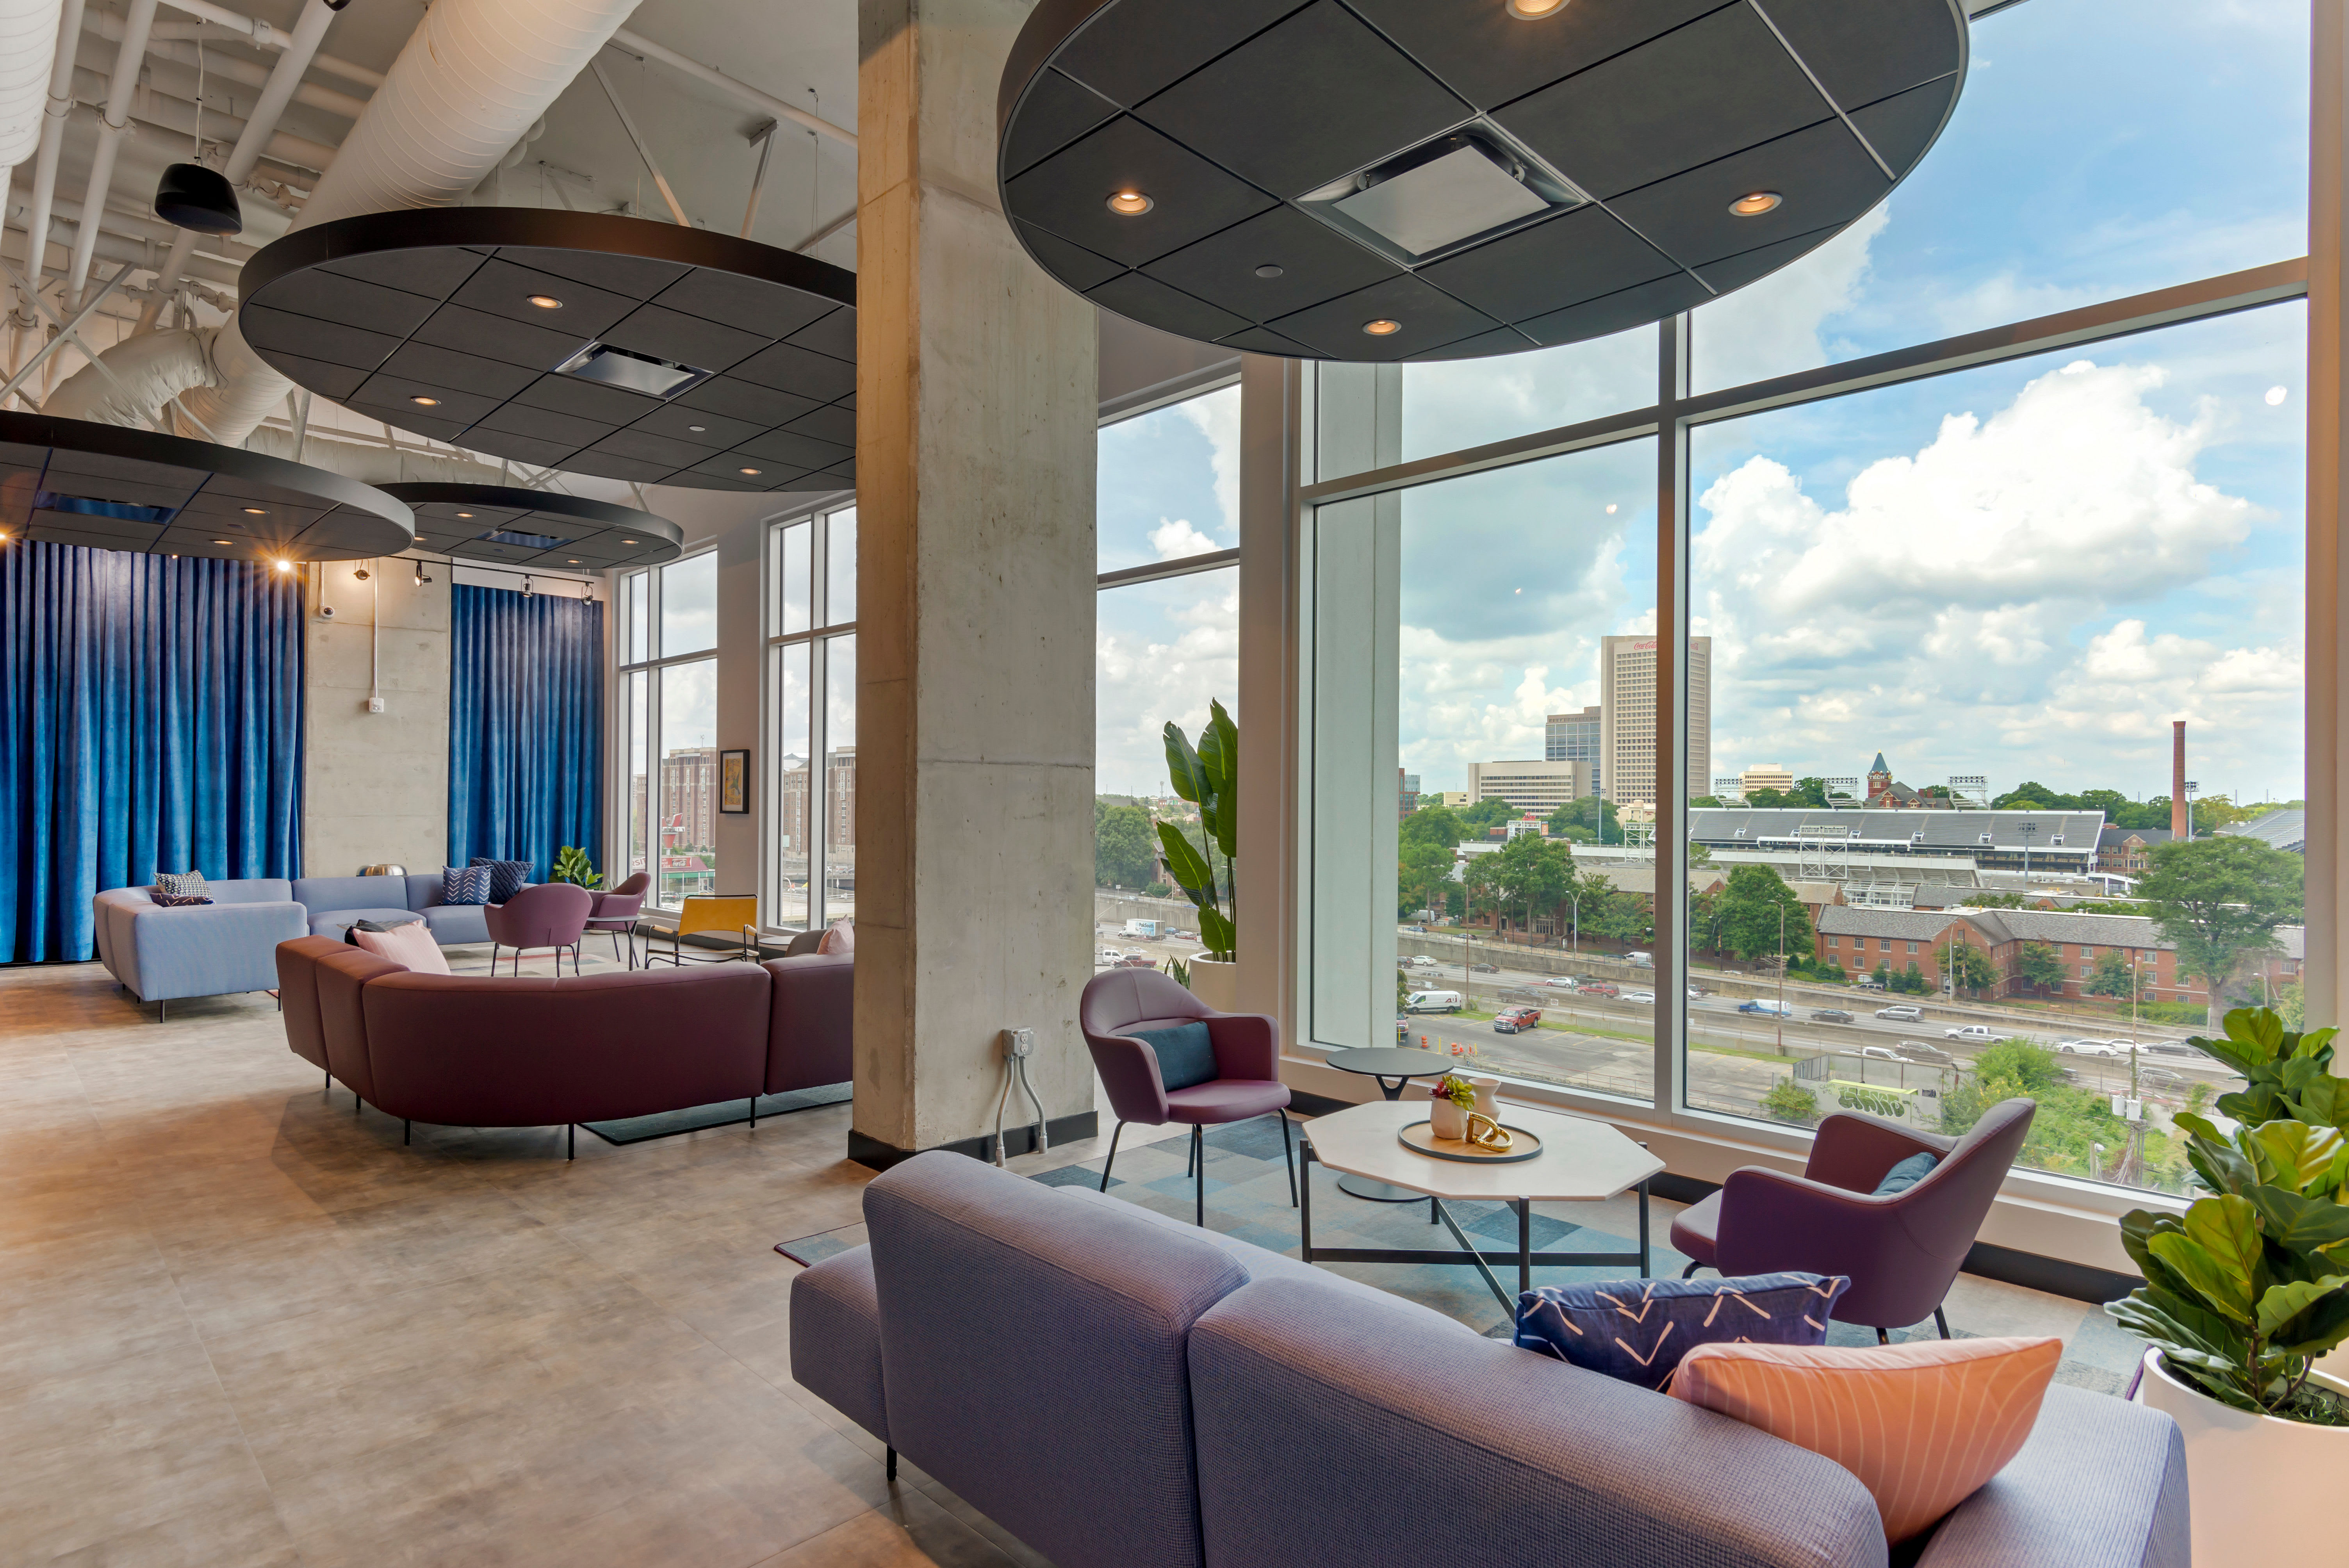 Great spaces for students to study with colleagues at HERE Atlanta in Atlanta, Georgia near Georgia Tech